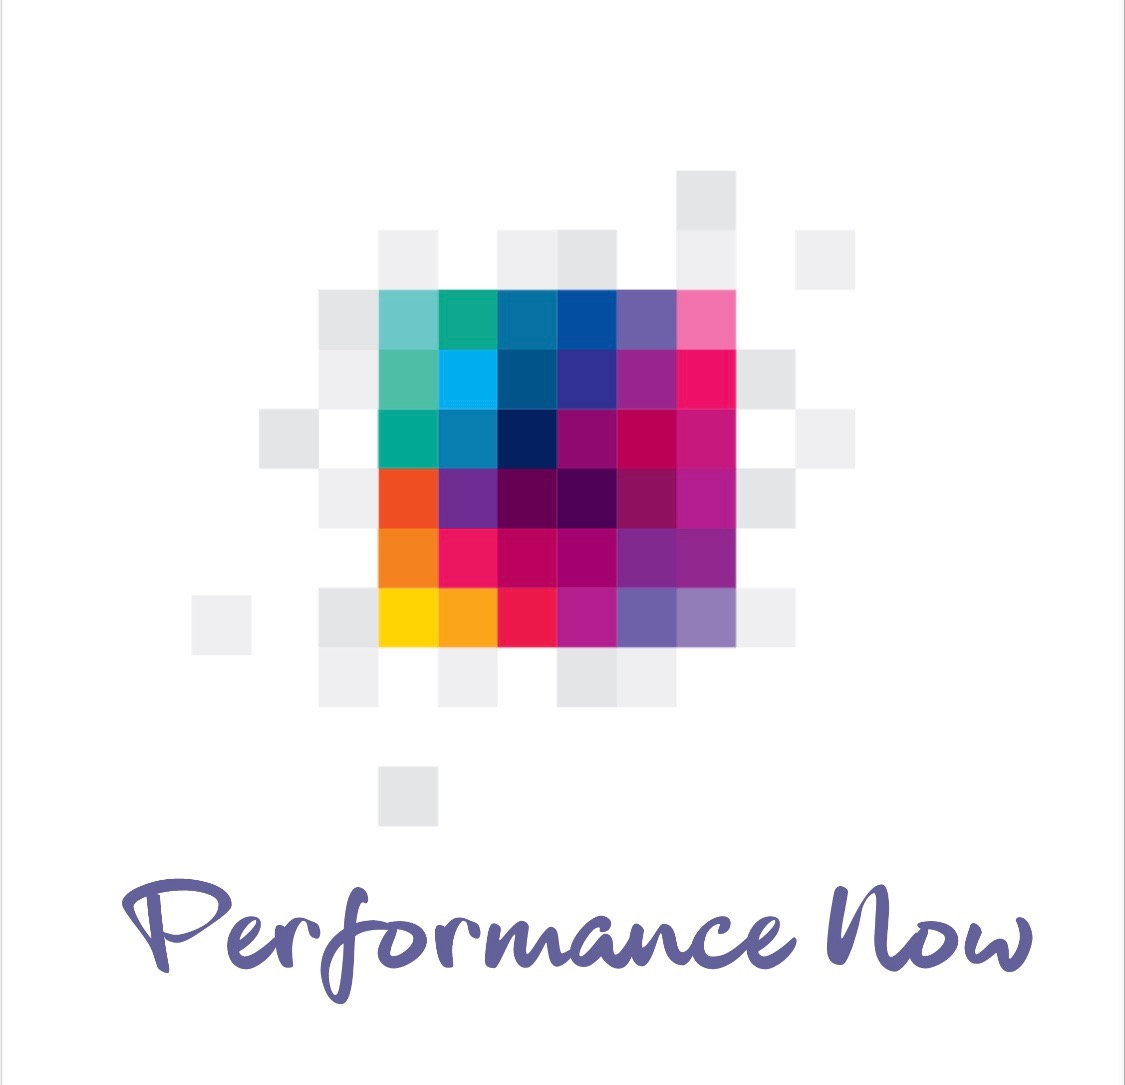 PERFORMANCE NOW LLC